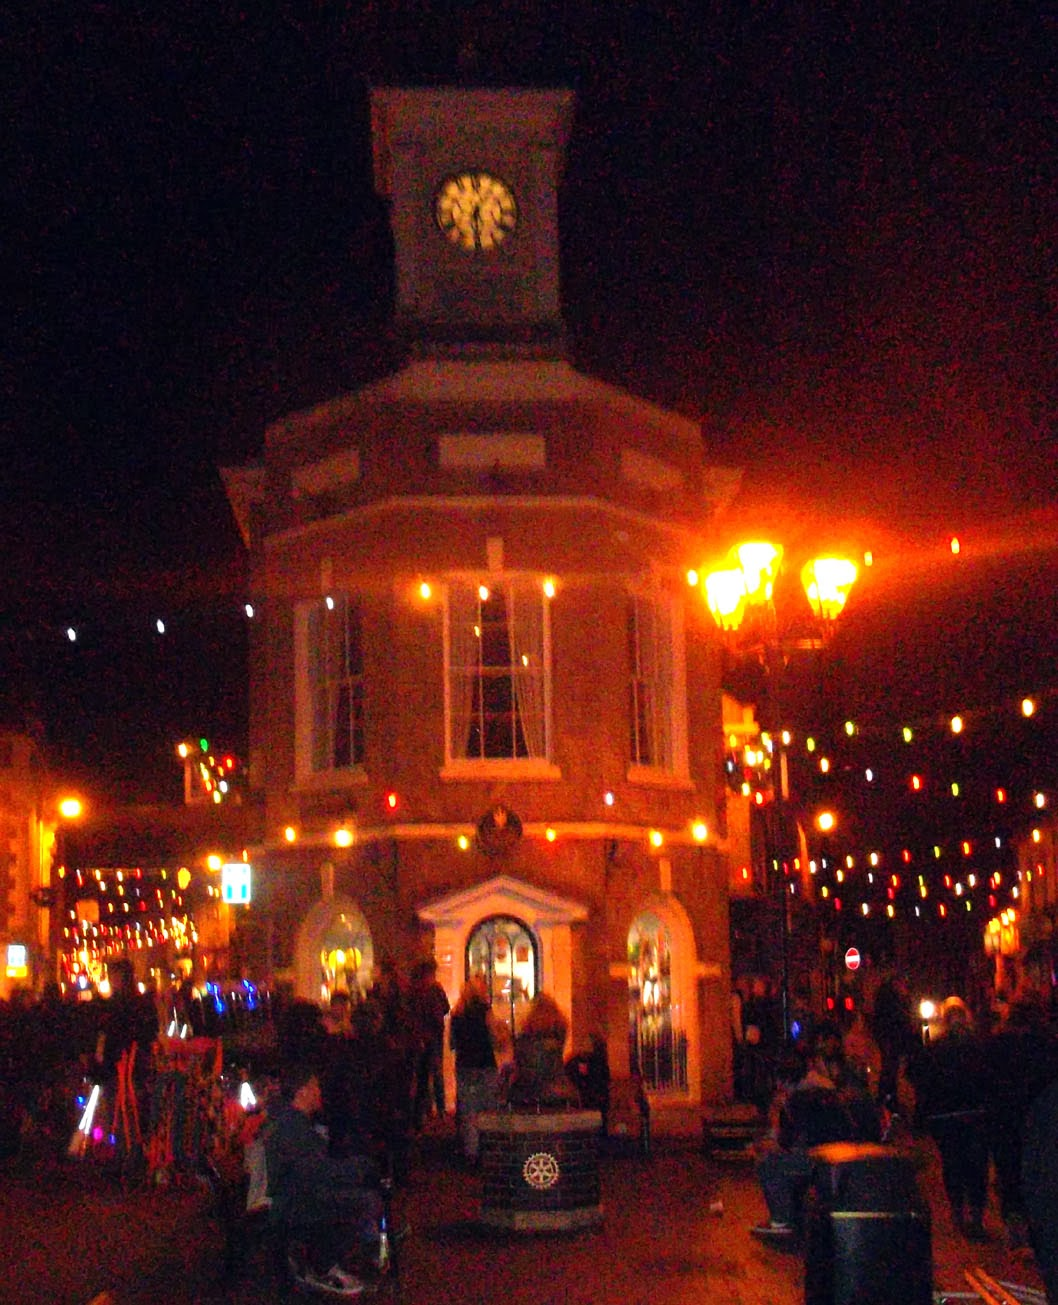 Brigg Christmas Lights 2013 featuring the Buttercross